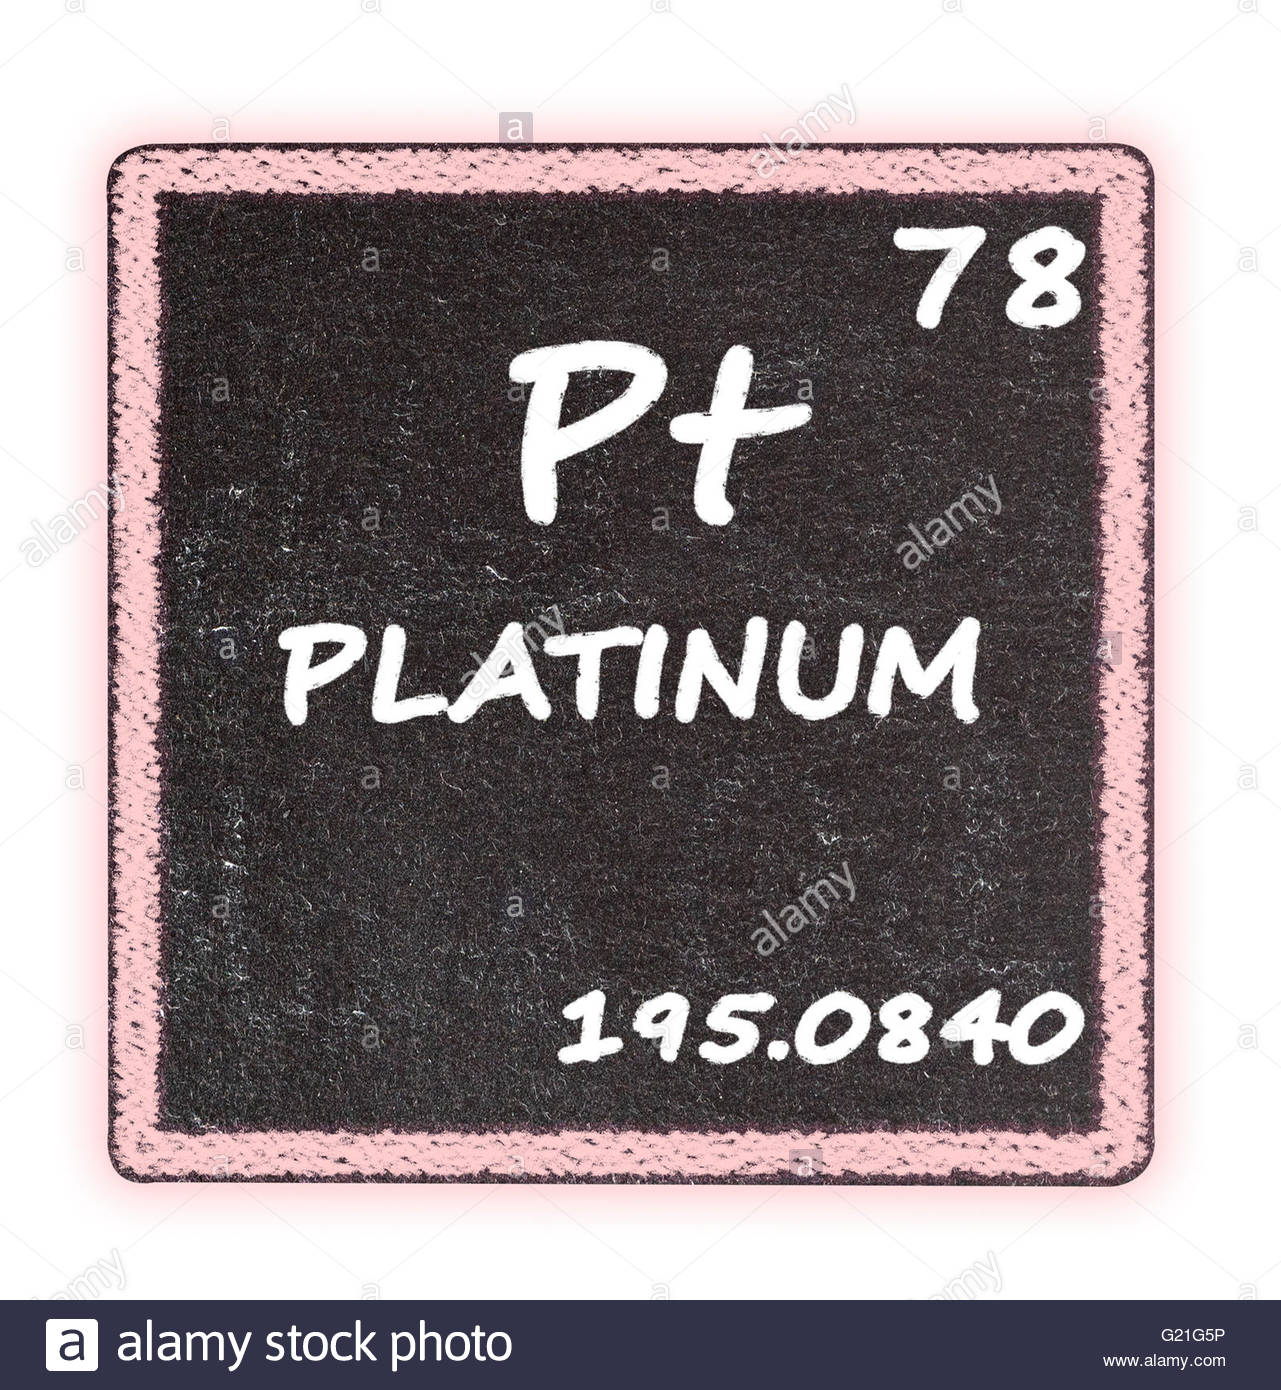 Platinum Details From The Periodic Table Stock Photo